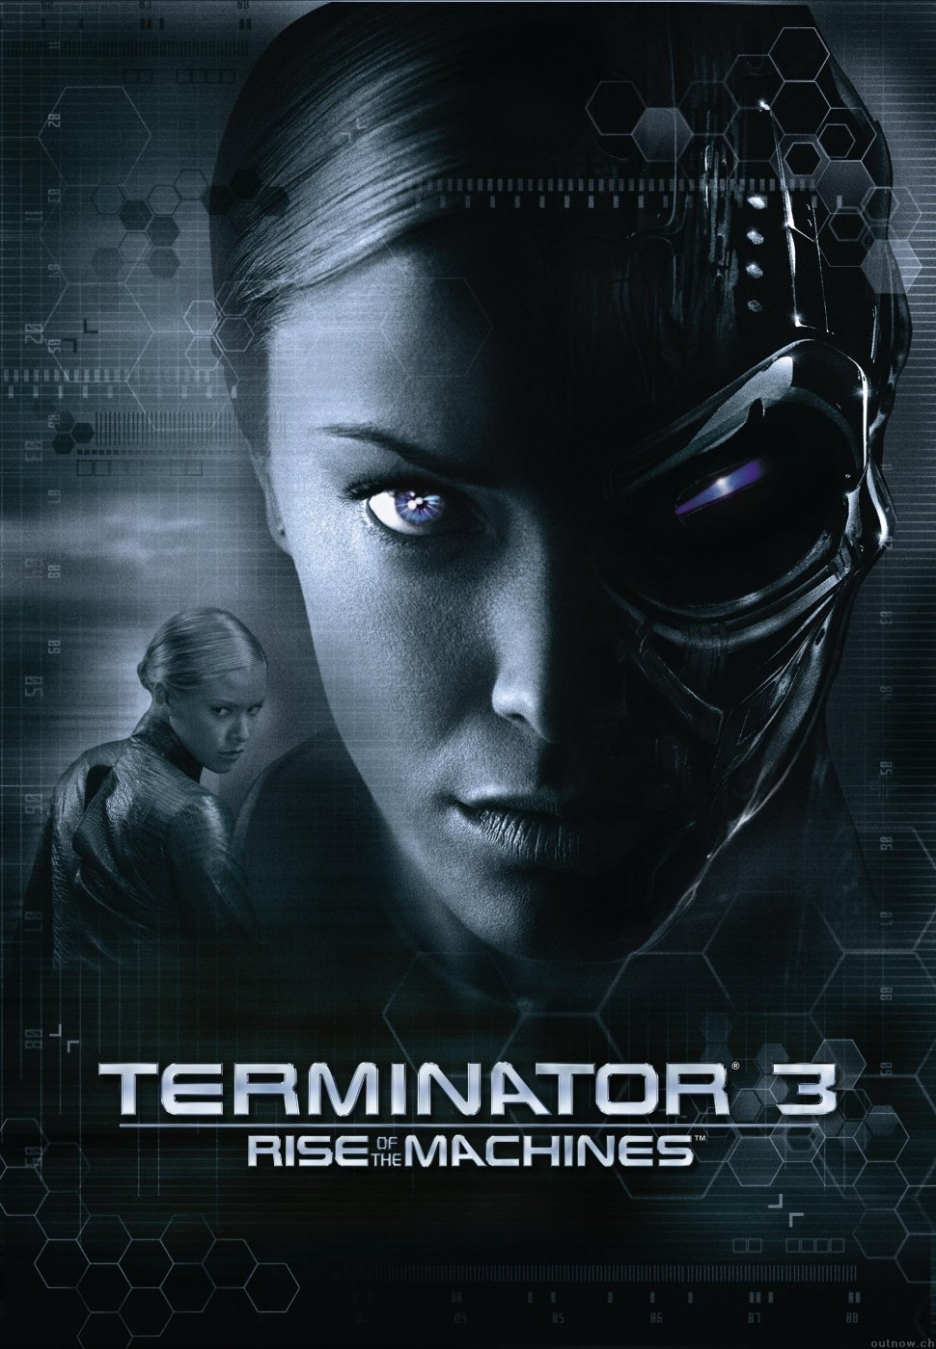 Terminator 3: Rise of the Machines (2003) | Check Out Here Pacific Rim 2013 Dvd Cover